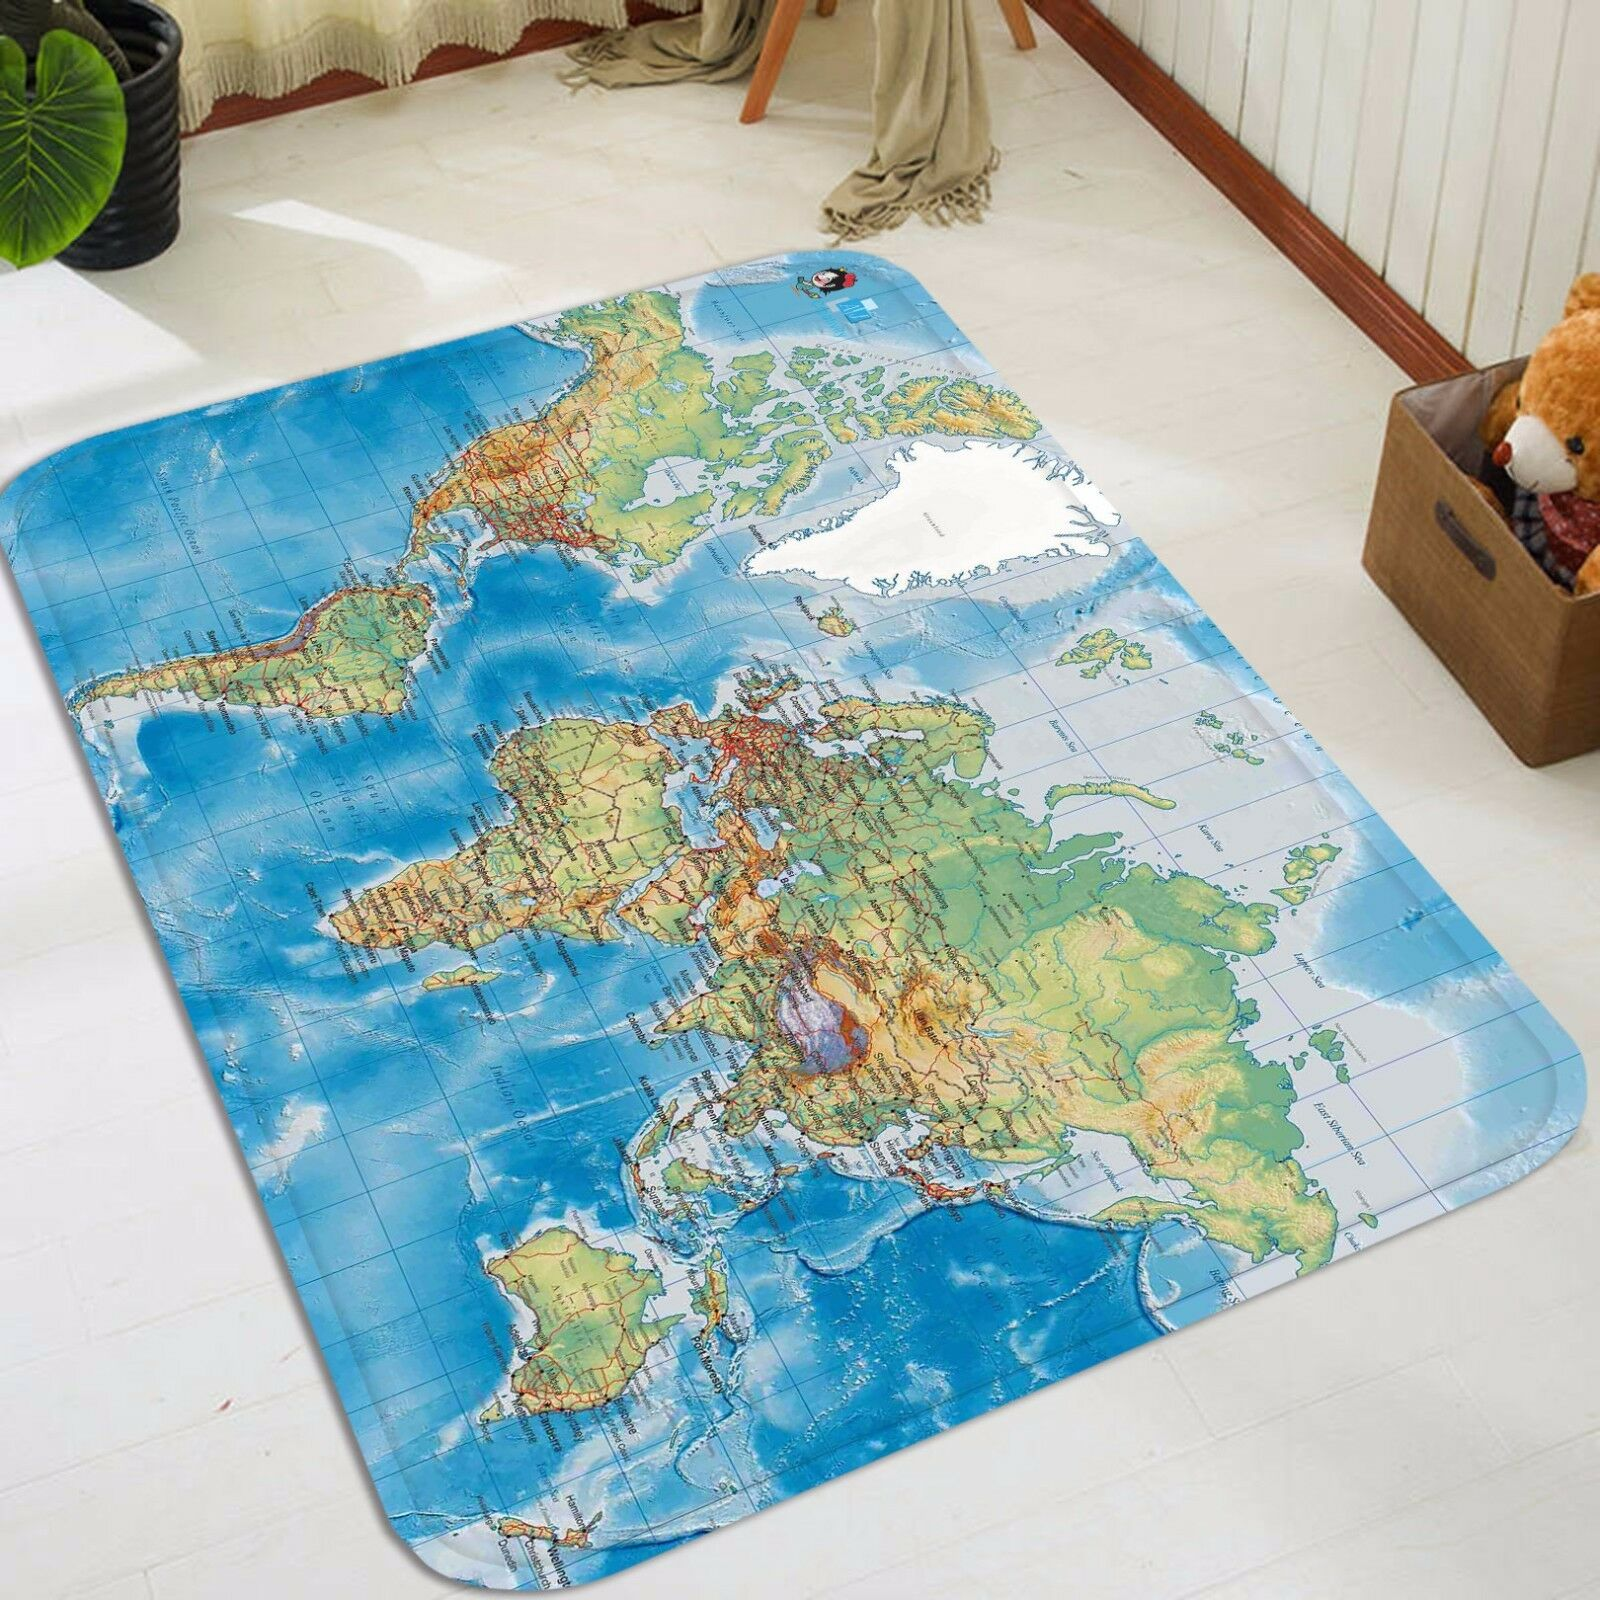 3D Map Bule 5 5 5 Non Slip Rug Mat Room Mat Quality Elegant Photo Carpet AU Summer 534dfc